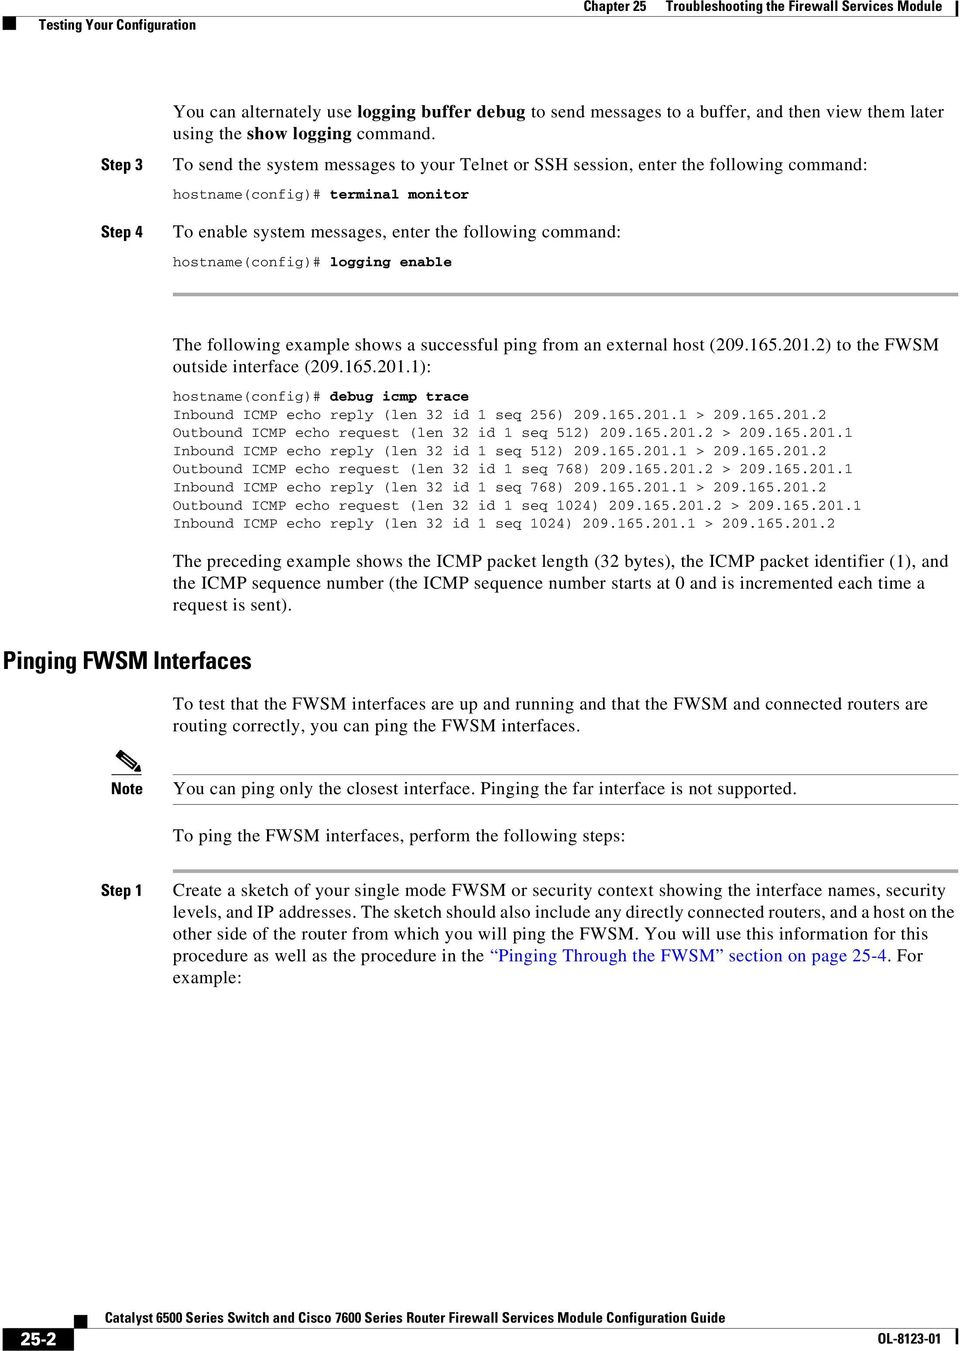 Troubleshooting the Firewall Services Module - PDF